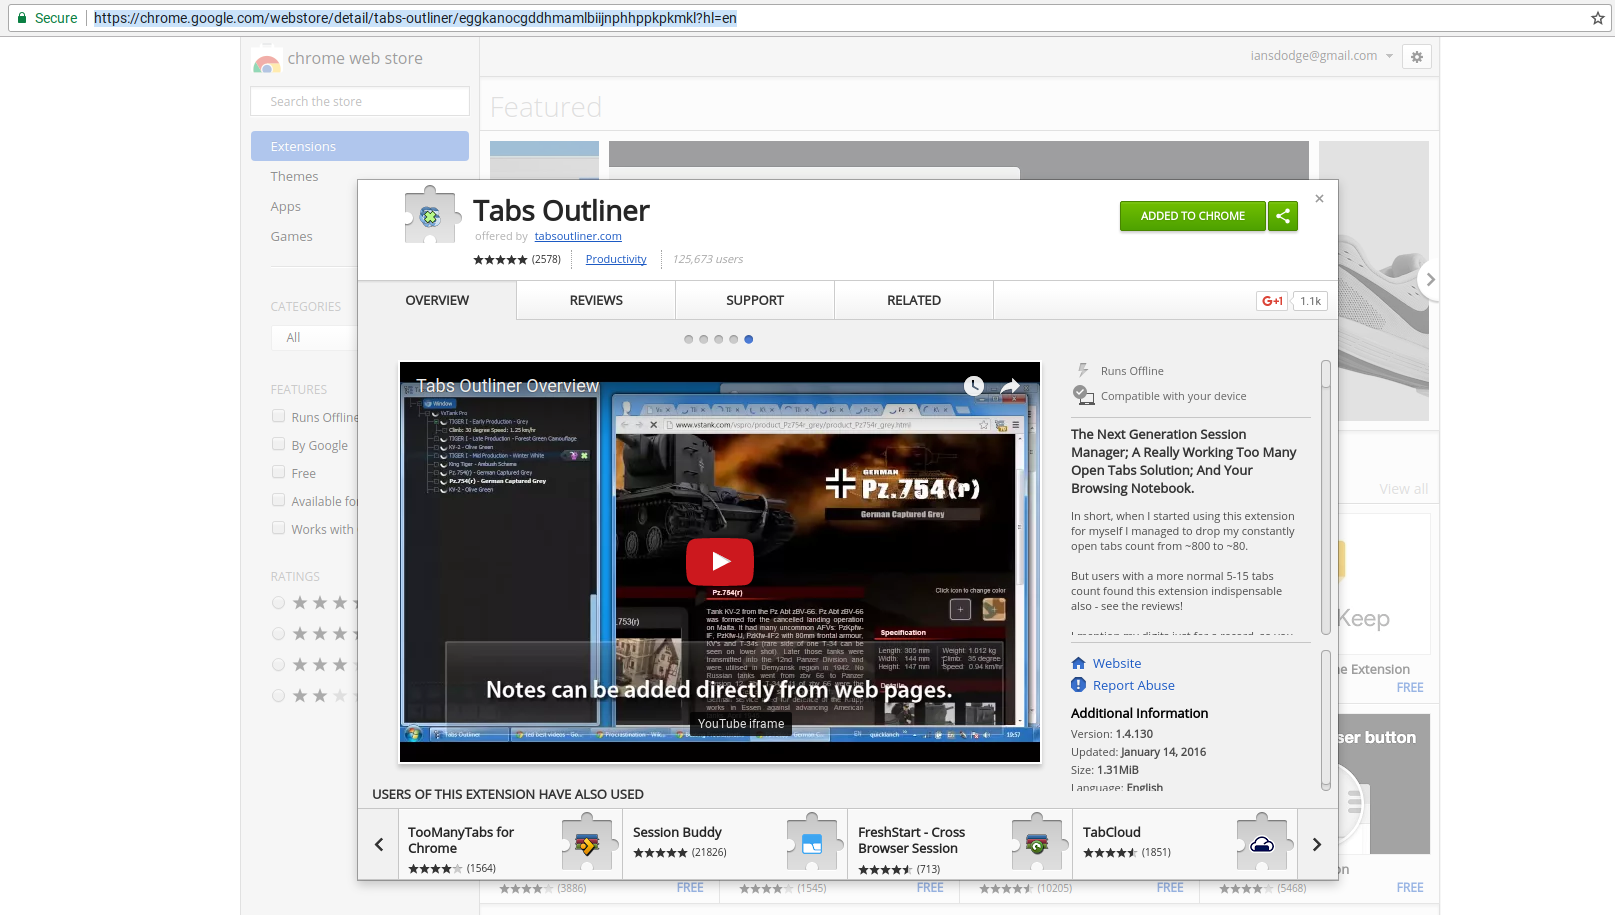 How to Install Tabs Outliner Chrome Extension (to Manage a Ridiculous # of Chrome Browser Tabs)